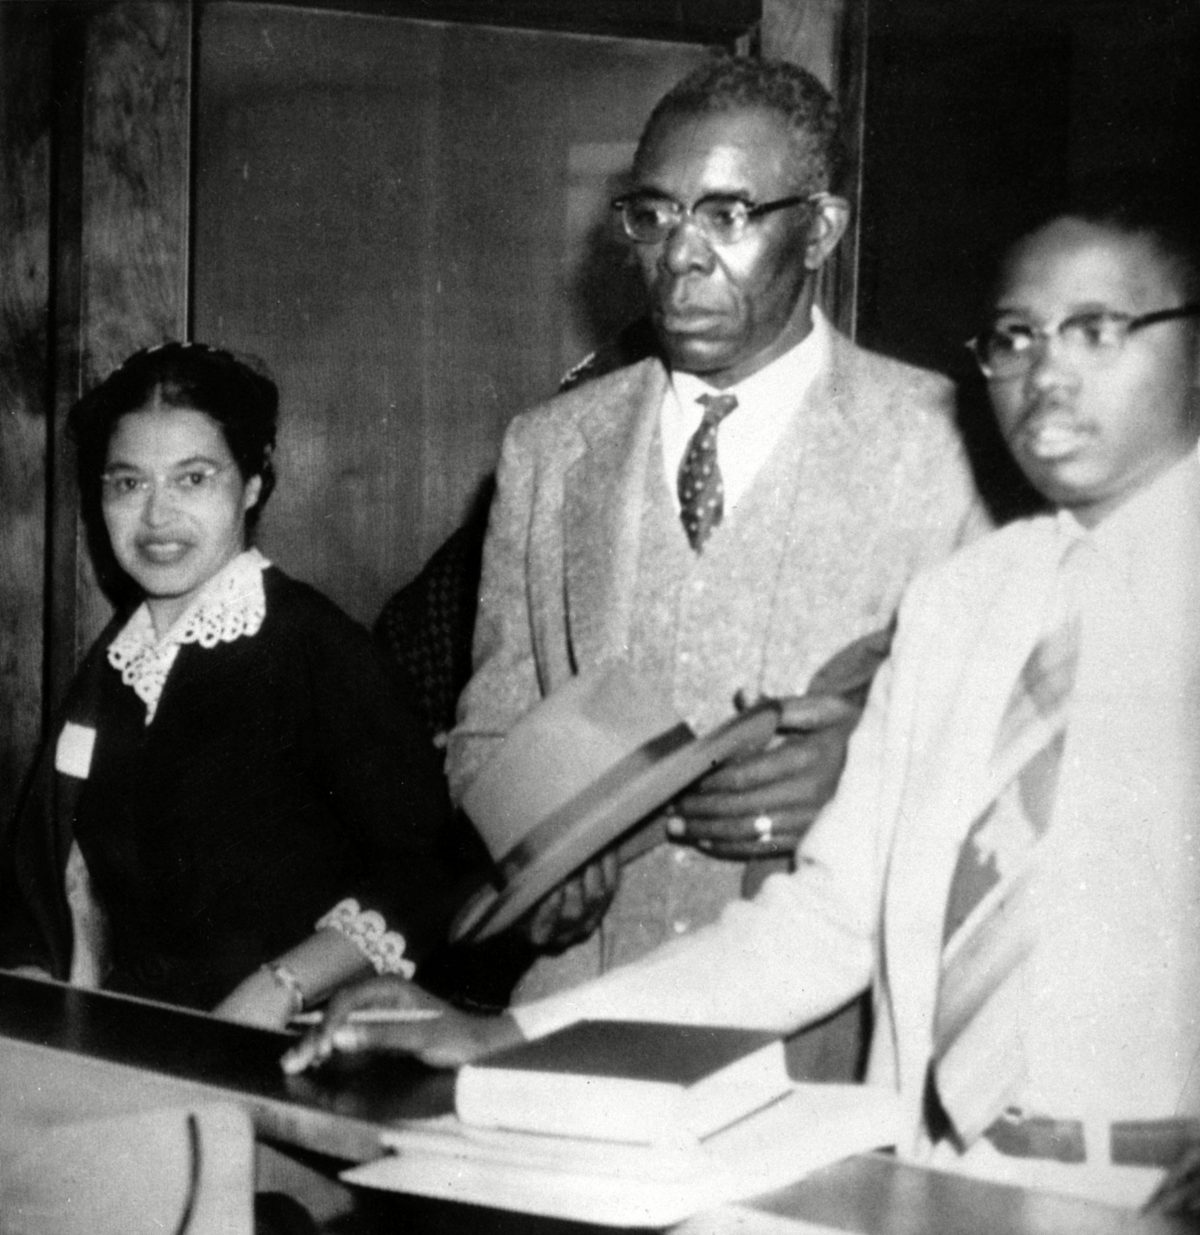 Rosa Parks Rosa Parks, left, who was fined $10 and court costs for violating Montgomery's segregation ordinance for city buses, makes bond for appeal to Circuit Court. Signing the bond were E.D. Nixon, center, former state president of the NAACP, and attorney Fred Gray. Parks' arrest for refusing to give up her seat to a white man on Dec. 1, 1955 touched off the Montgomery bus boycott. Her act of civil disobedience got relatively little attention, noted briefly in The Montgomery Advertiser. The story went national Dec. 5, 1955, when the AP wrote of a plan to make Parks the test case for laws segregating public transportation 5 Dec 1955